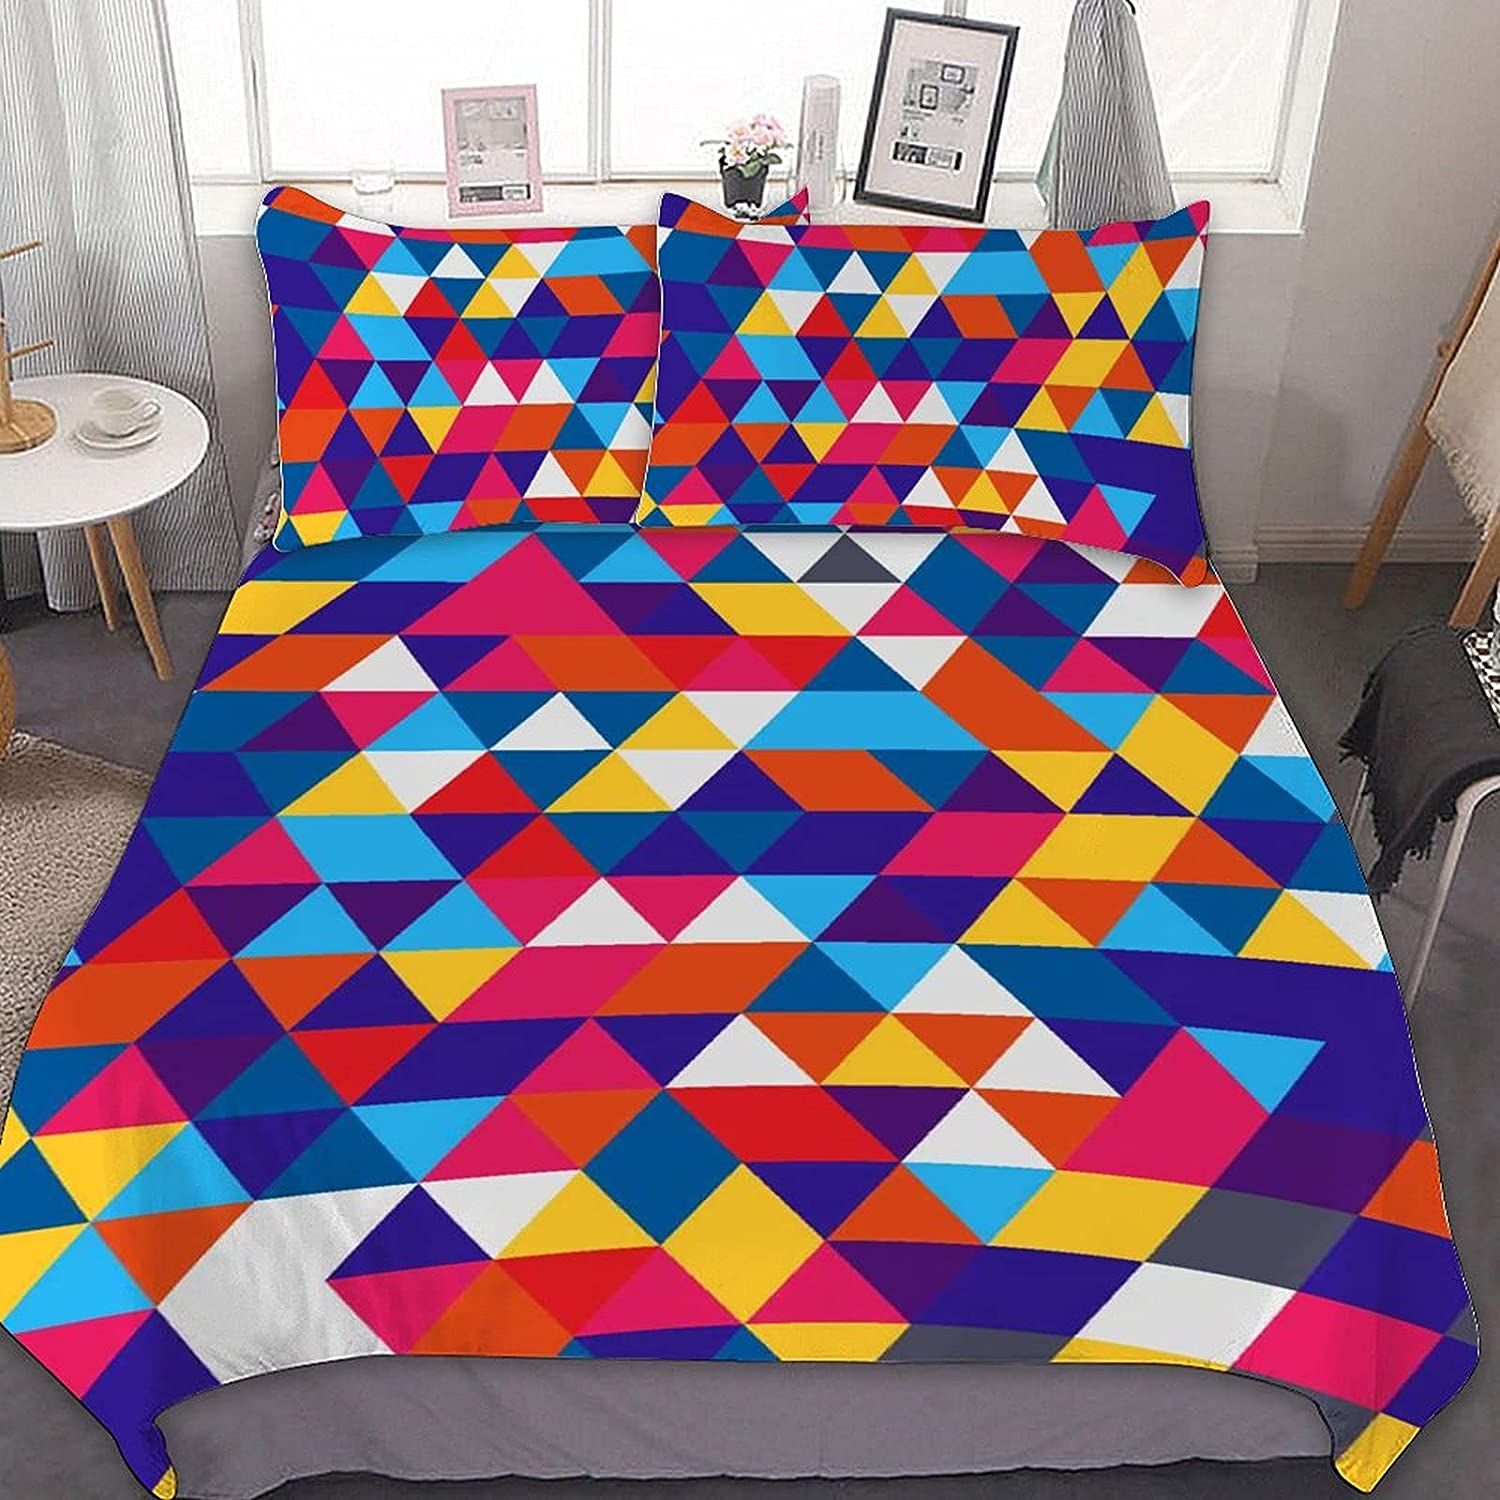 Colorado Springs Mall Modern Geometric Bedding Set 3 Soft Free shipping anywhere in the nation Ultra Comforter Piece Co